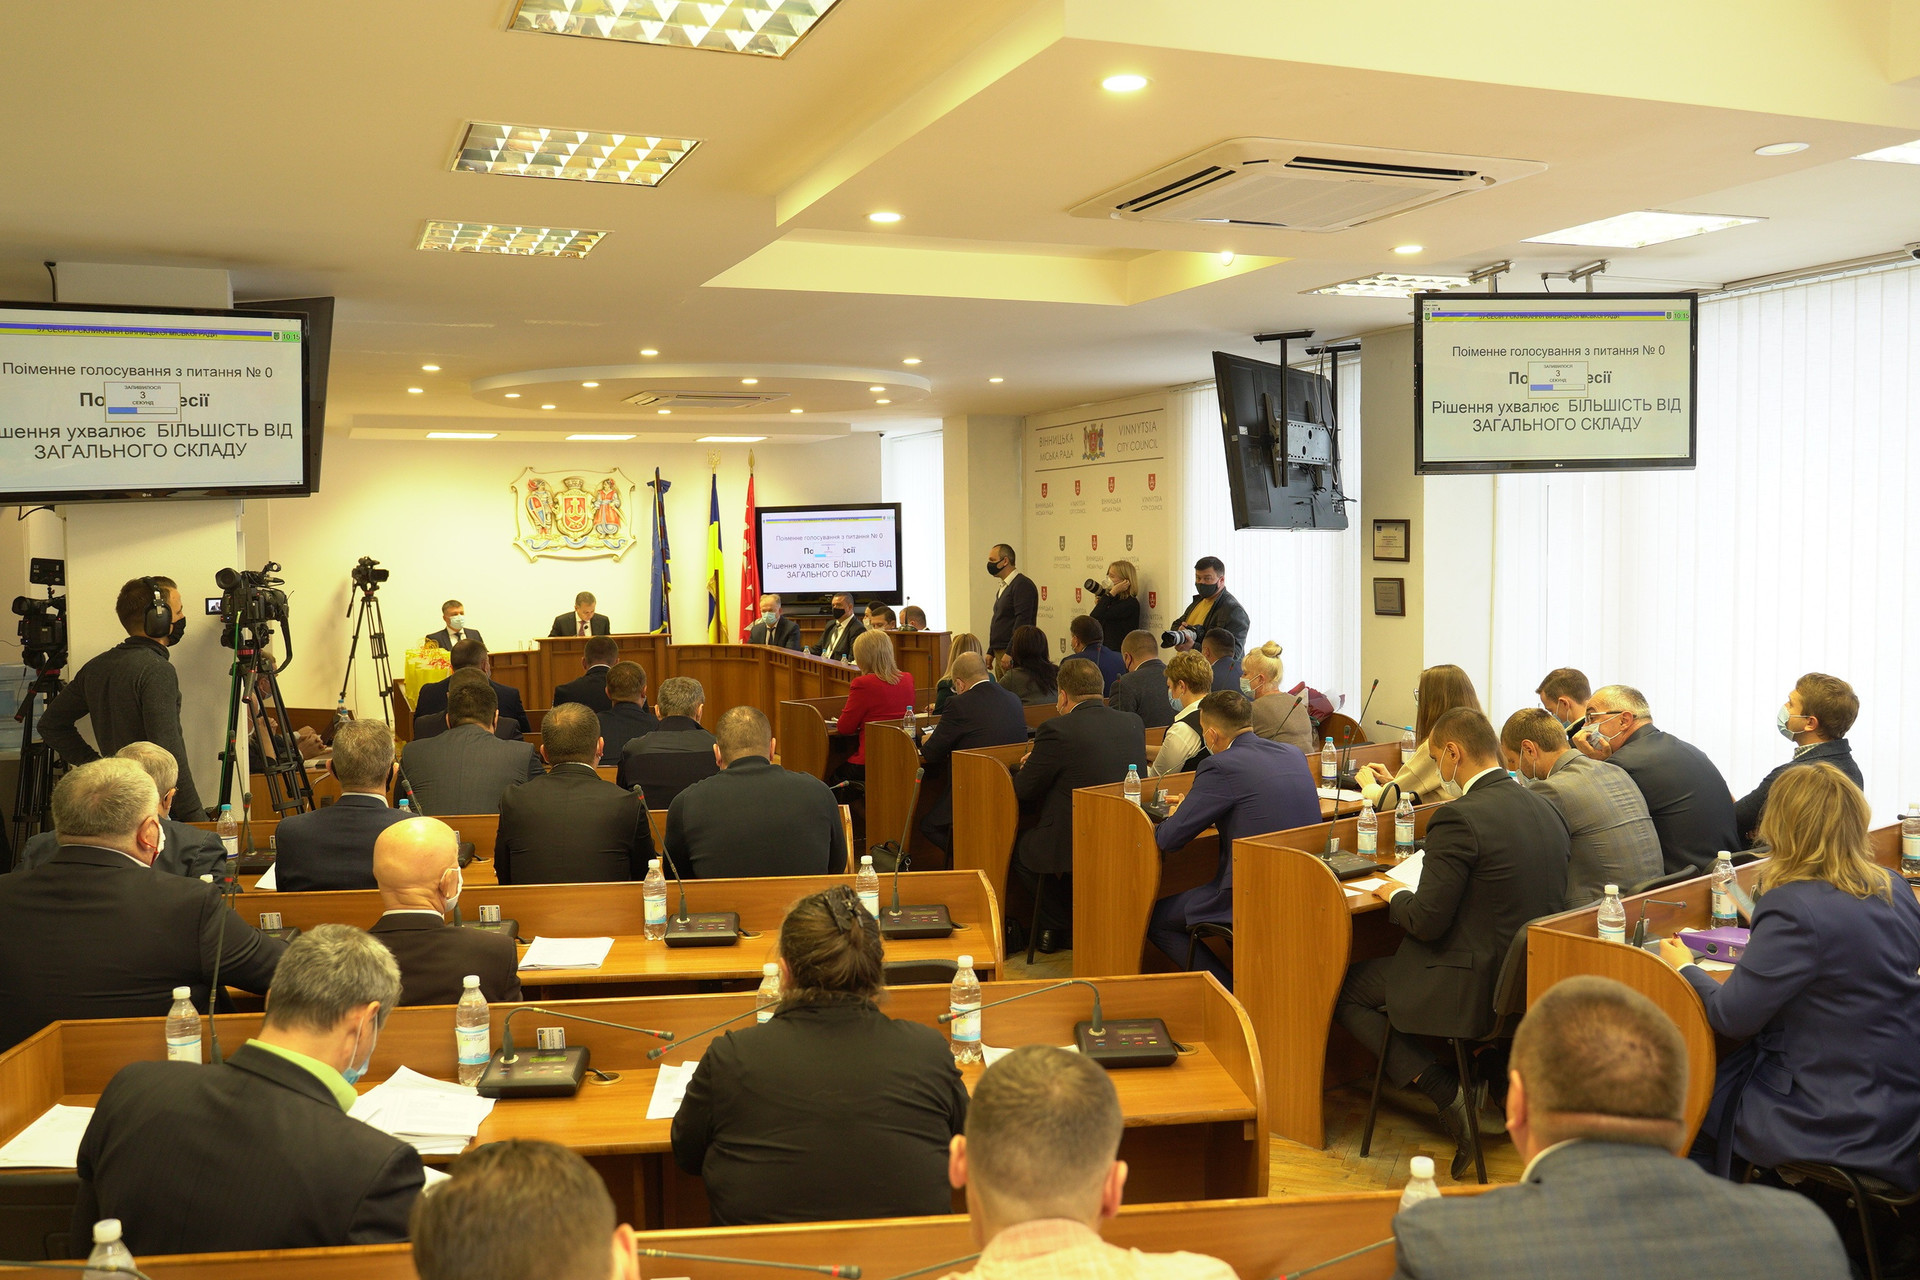 Program to Enhance Competitiveness of Small and Medium Enterprises for 2021-2023 was approved at the session of Vinnytsia City Council